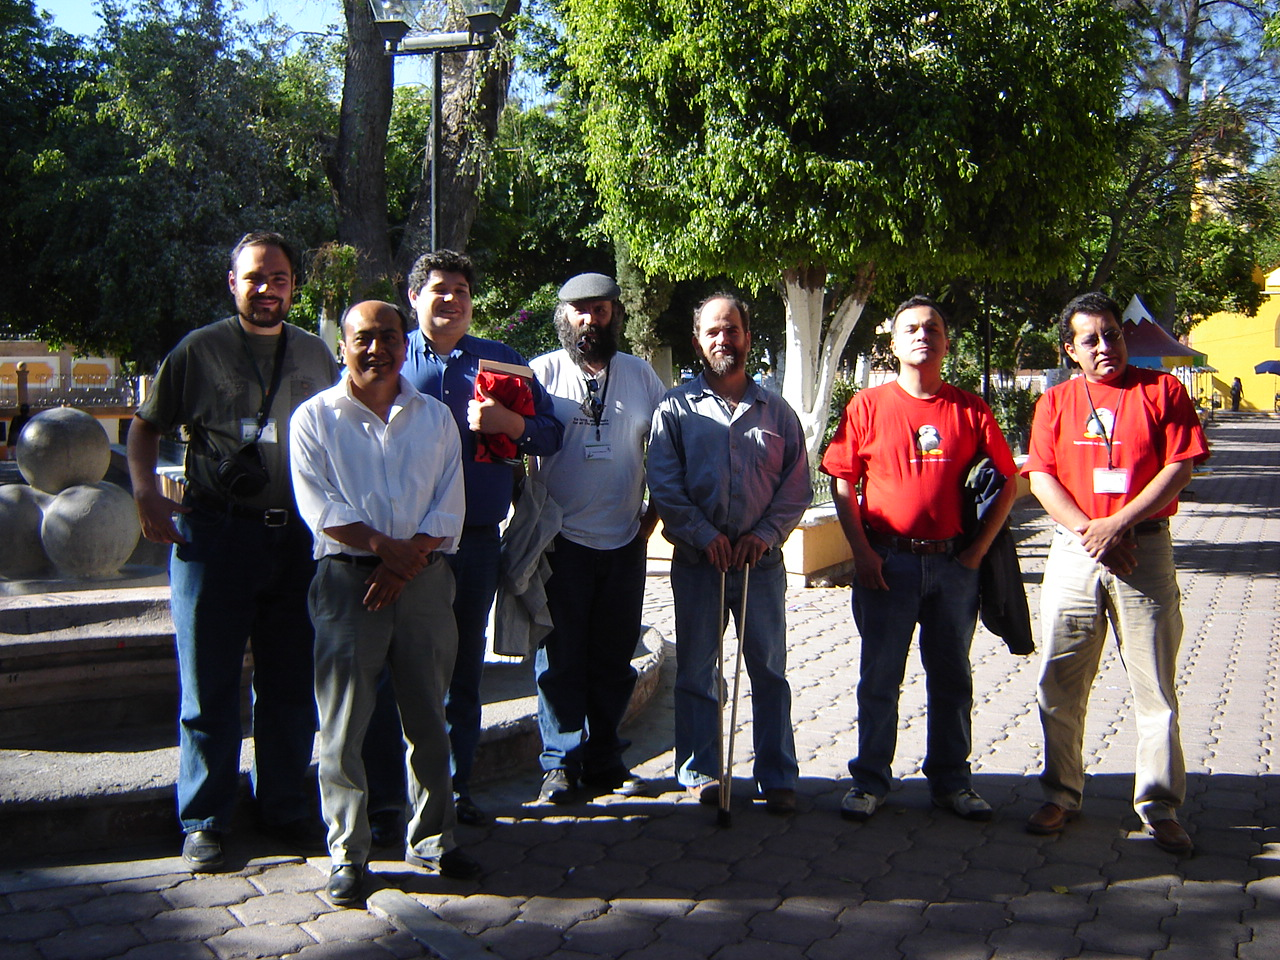 The group of invited speakers